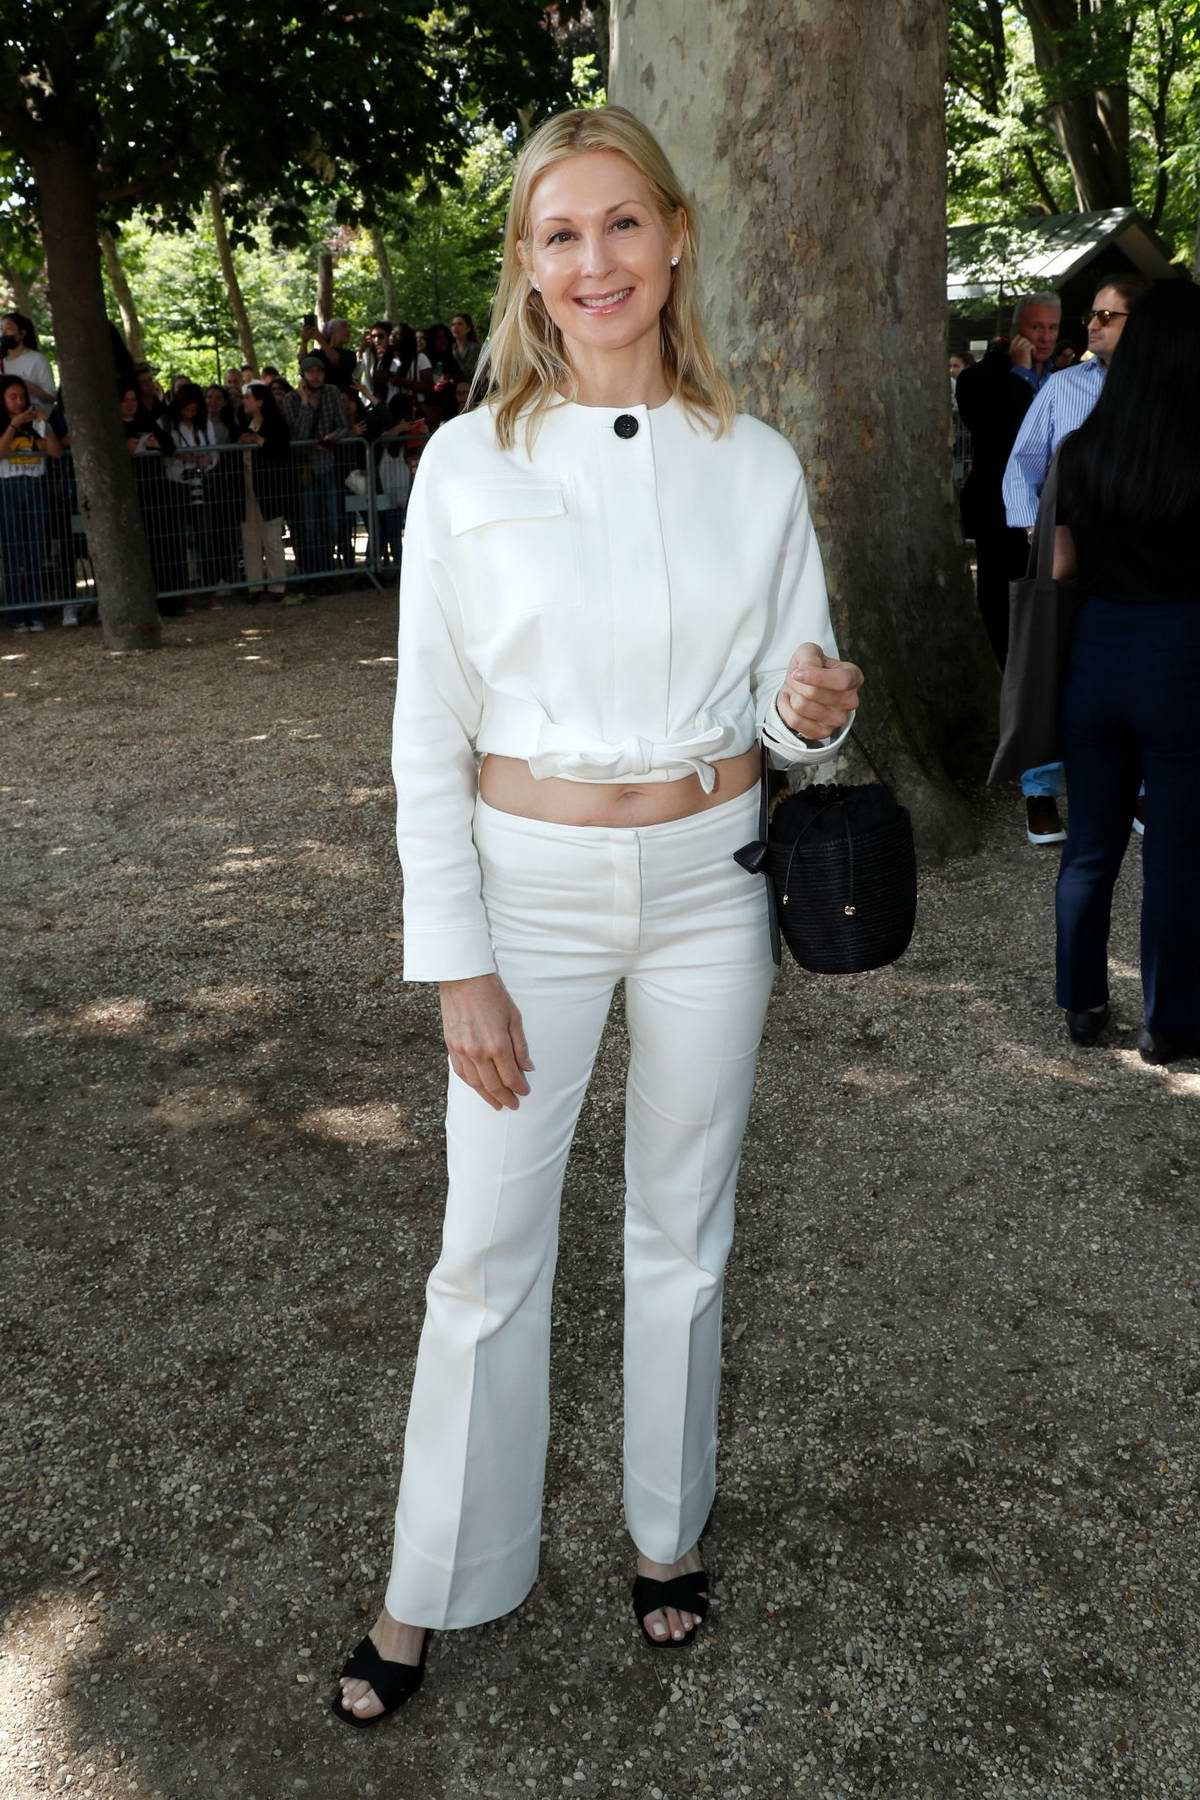 Kelly Rutherford attends the Berluti Menswear Spring/Summer 2020 show during Paris Fashion Week in Paris, France